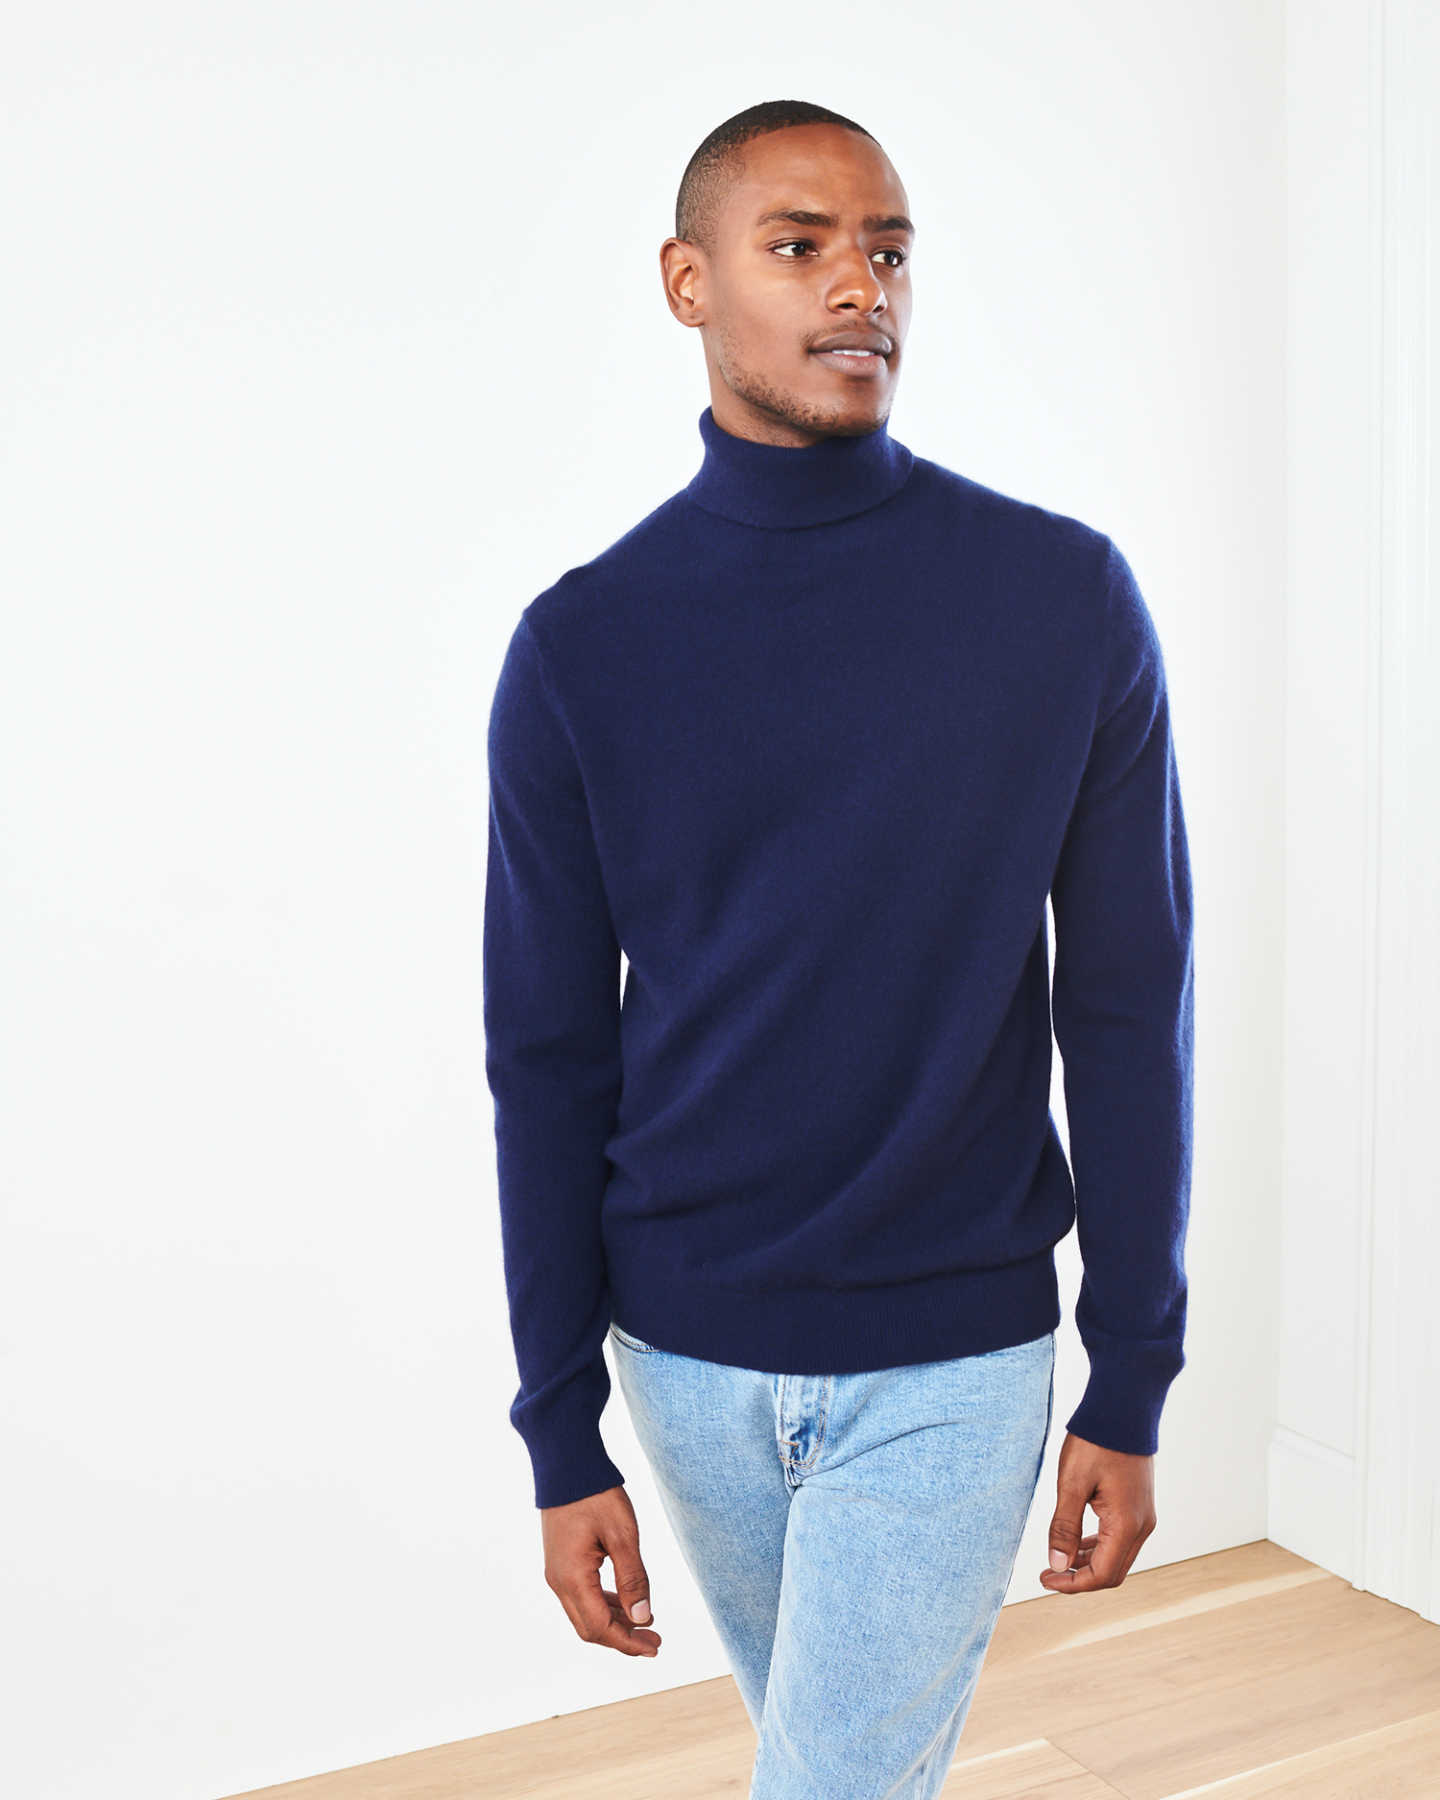 Man wearing navy men's cashmere turtleneck sweater